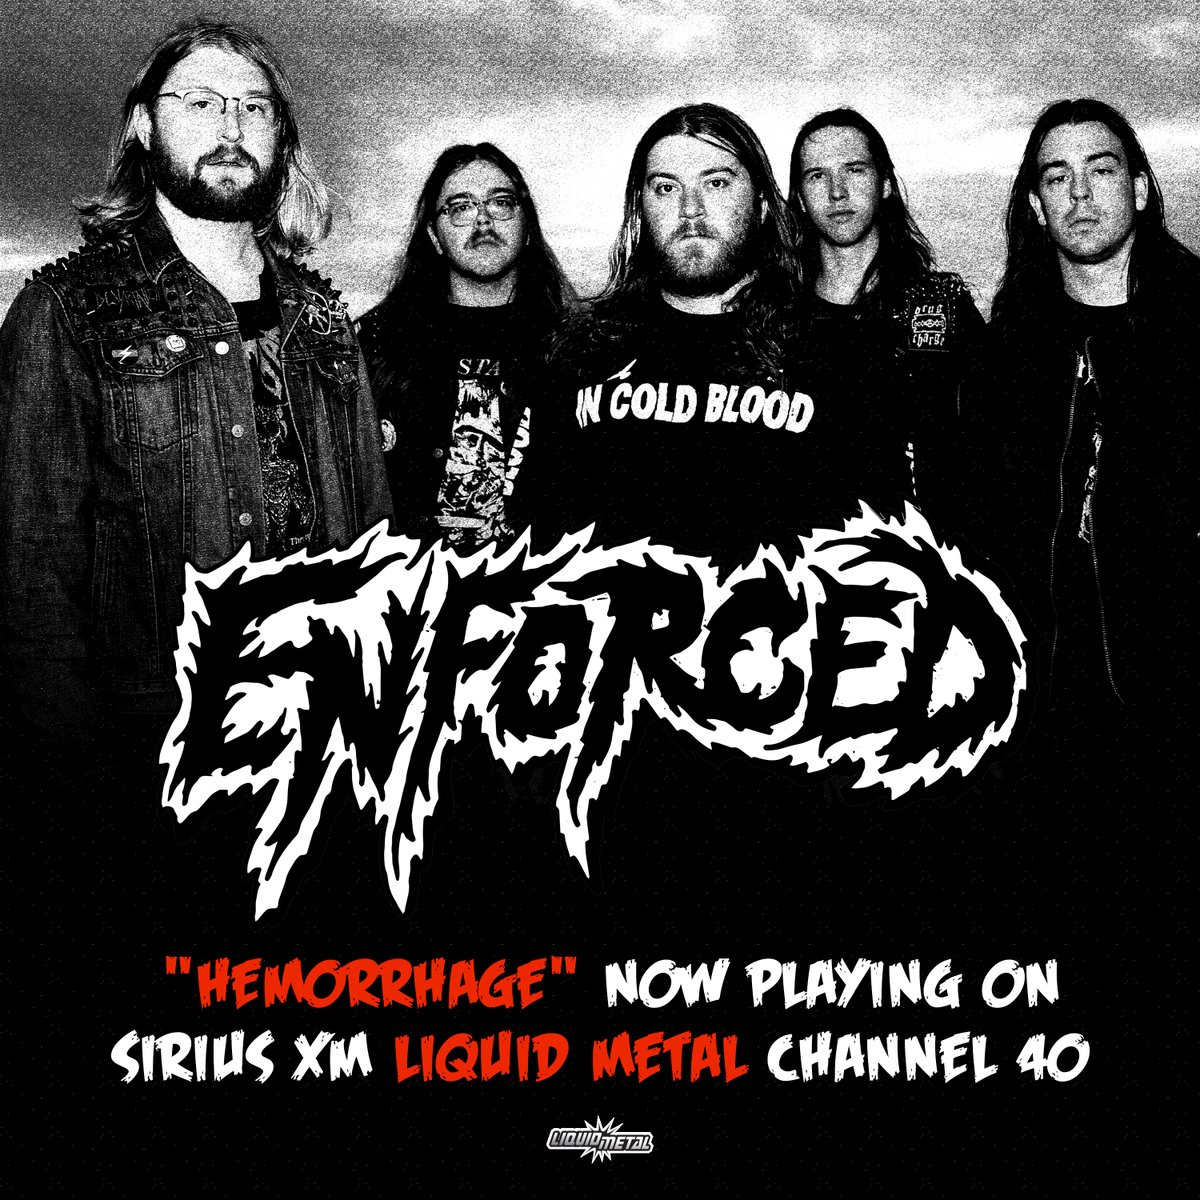 """.@EnforcedRVA """"Hemorrhage"""" is now playing on @SXMLiquidMetal 🤘  Thank you @josemangin for the support!"""